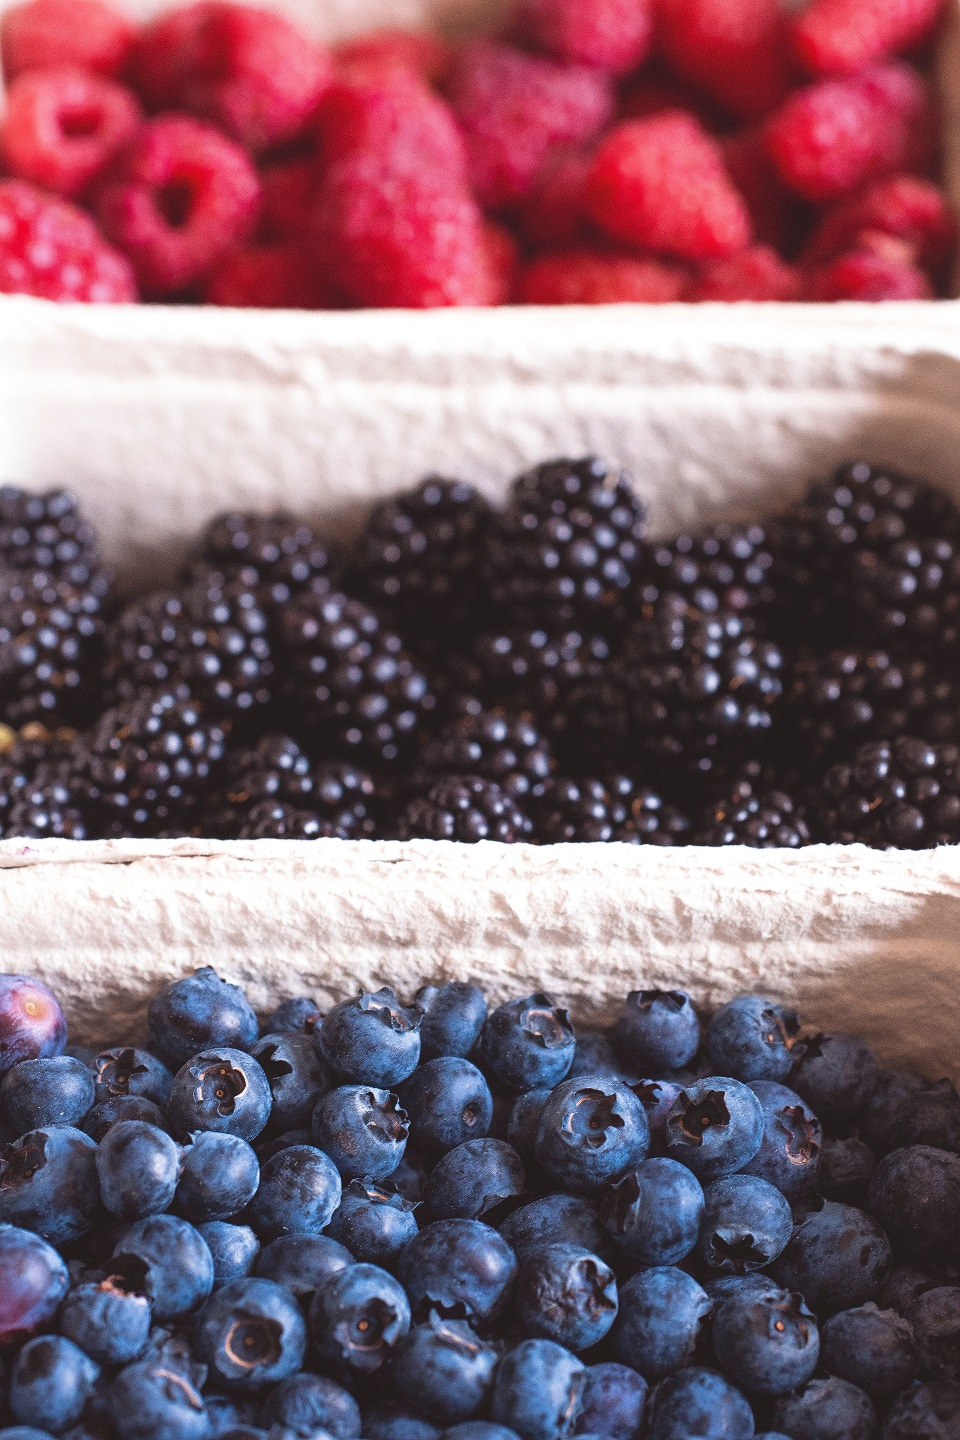 berries-blackberries-blueberries-cropped.jpg